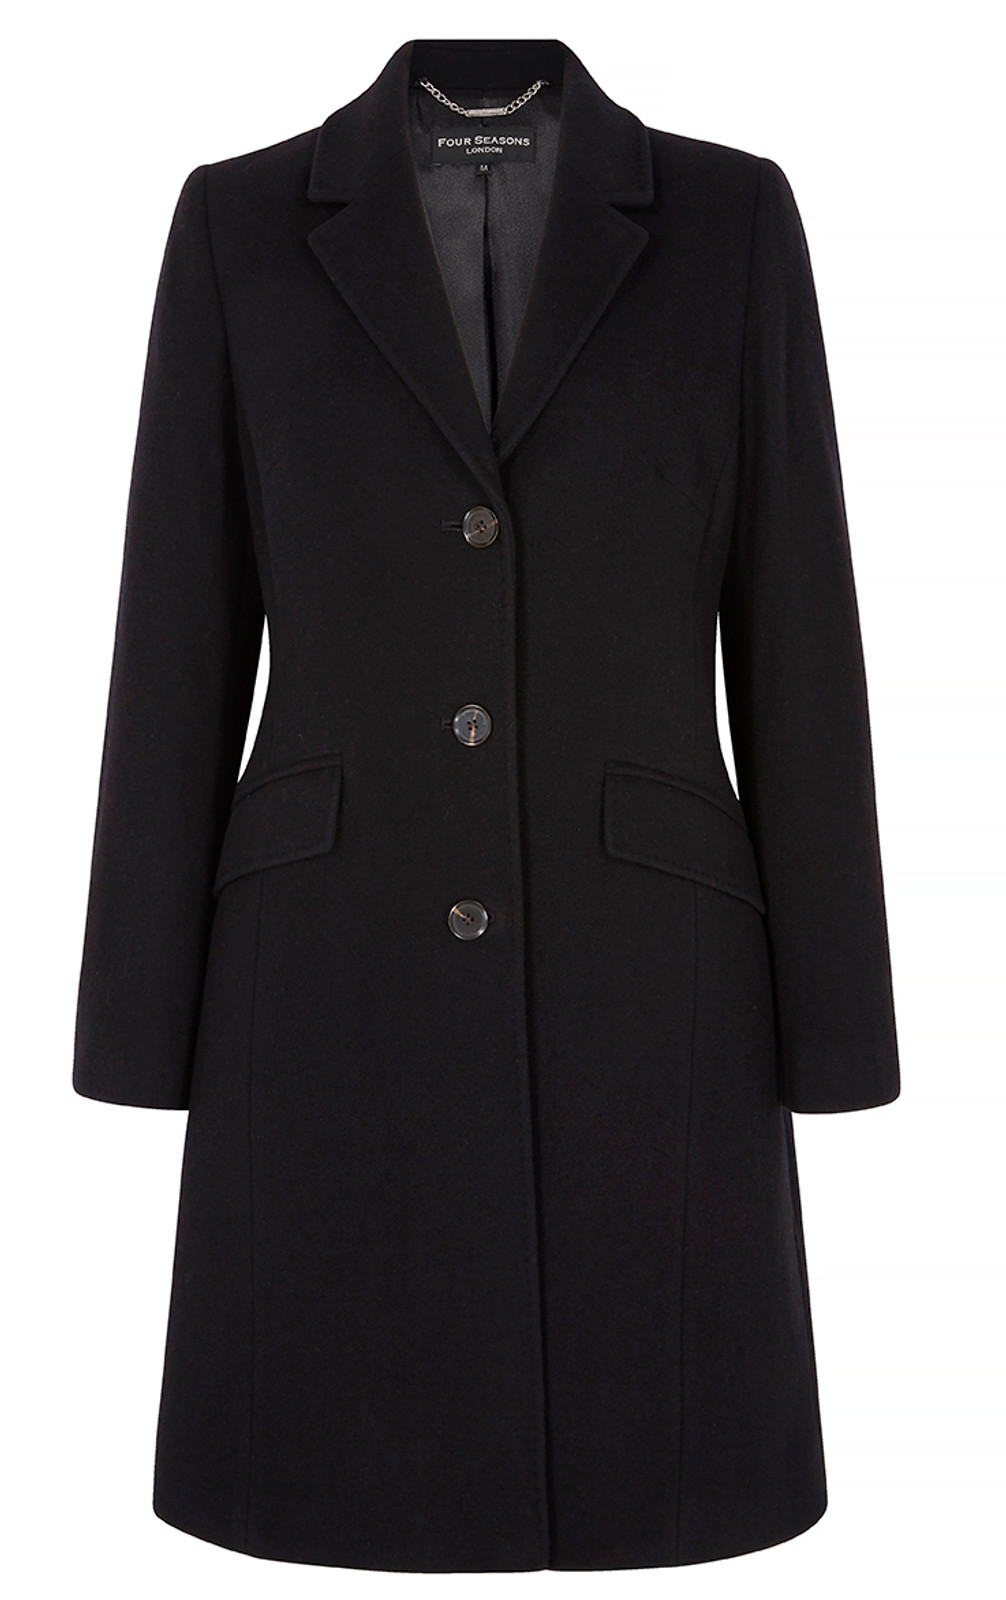 Top Stitch City Coat, Black